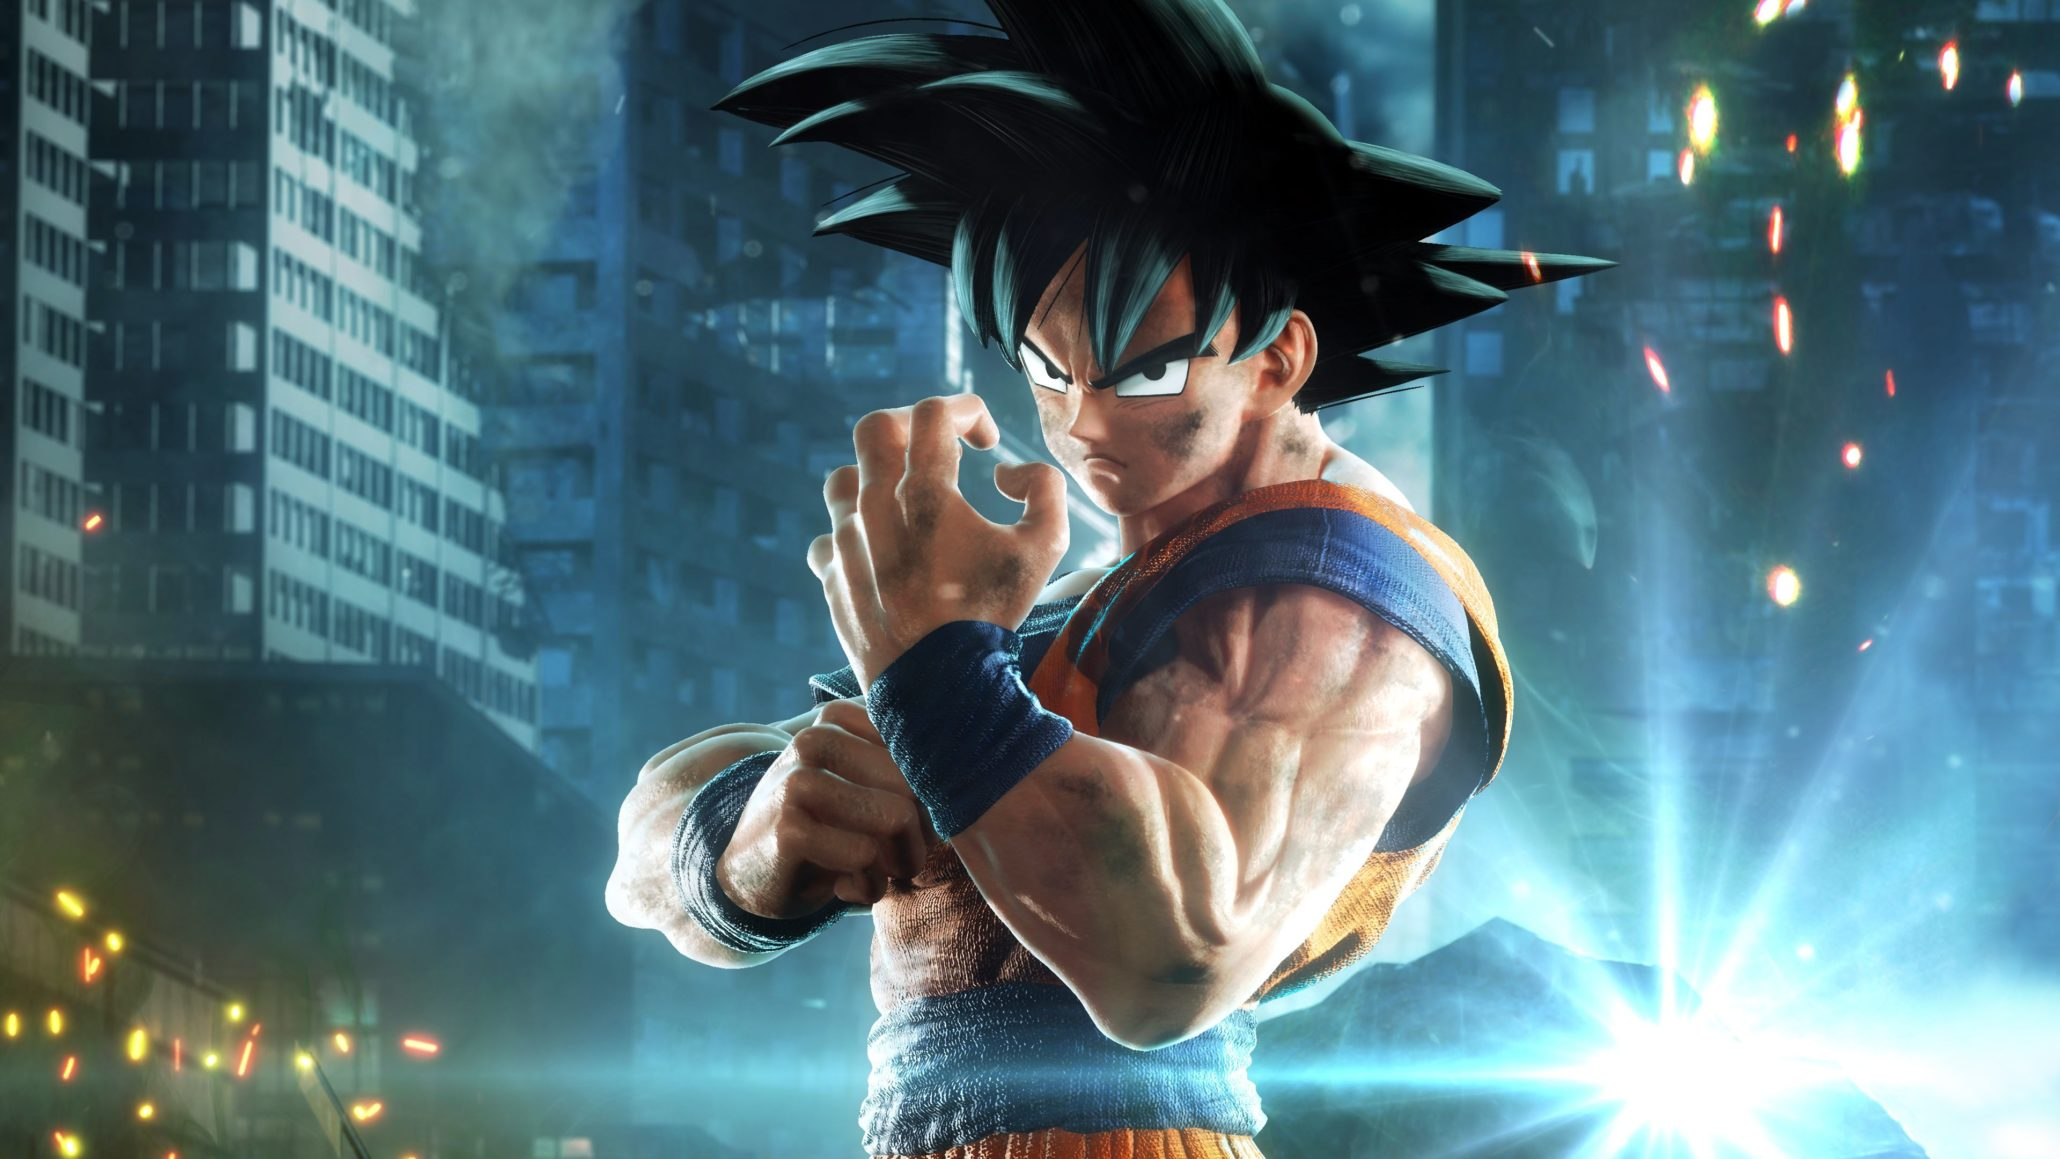 download jump force on ios